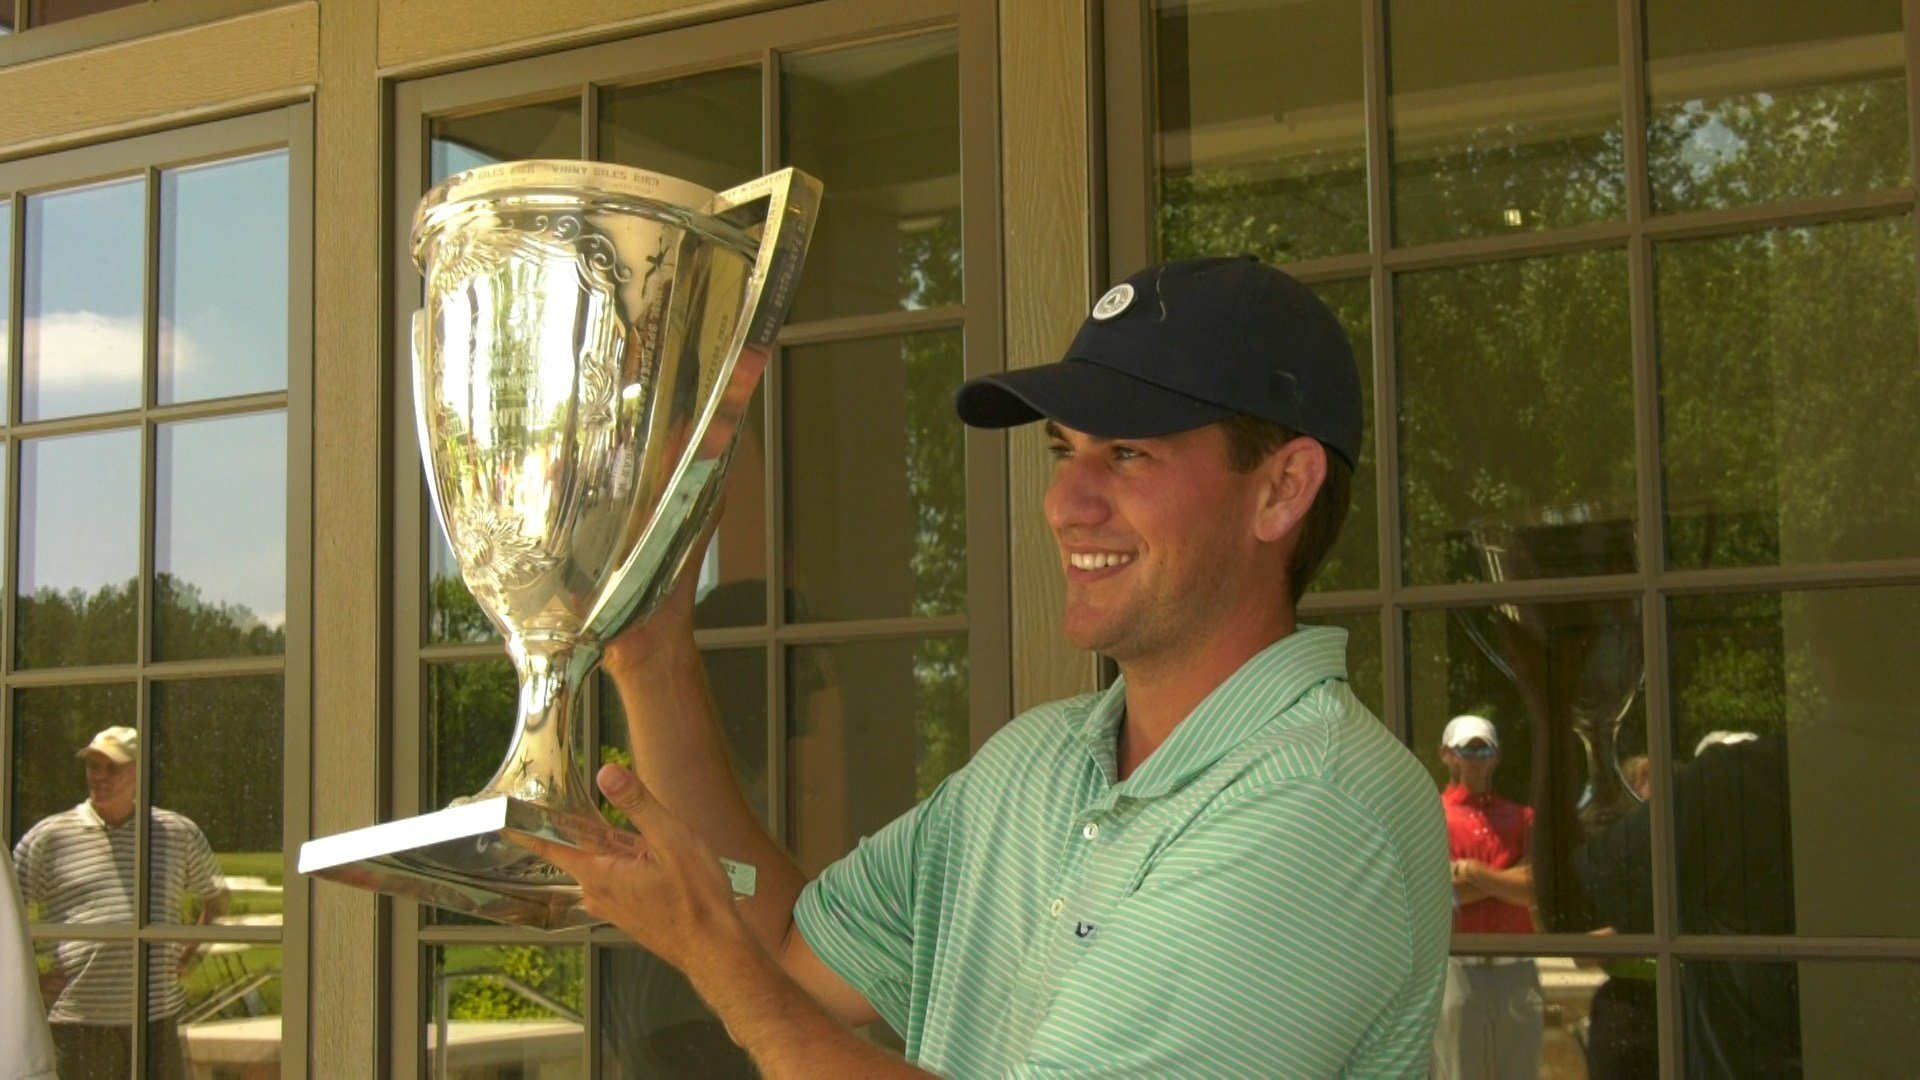 Trey Smith won the 105th VSGA Amateur Championship this past weekend